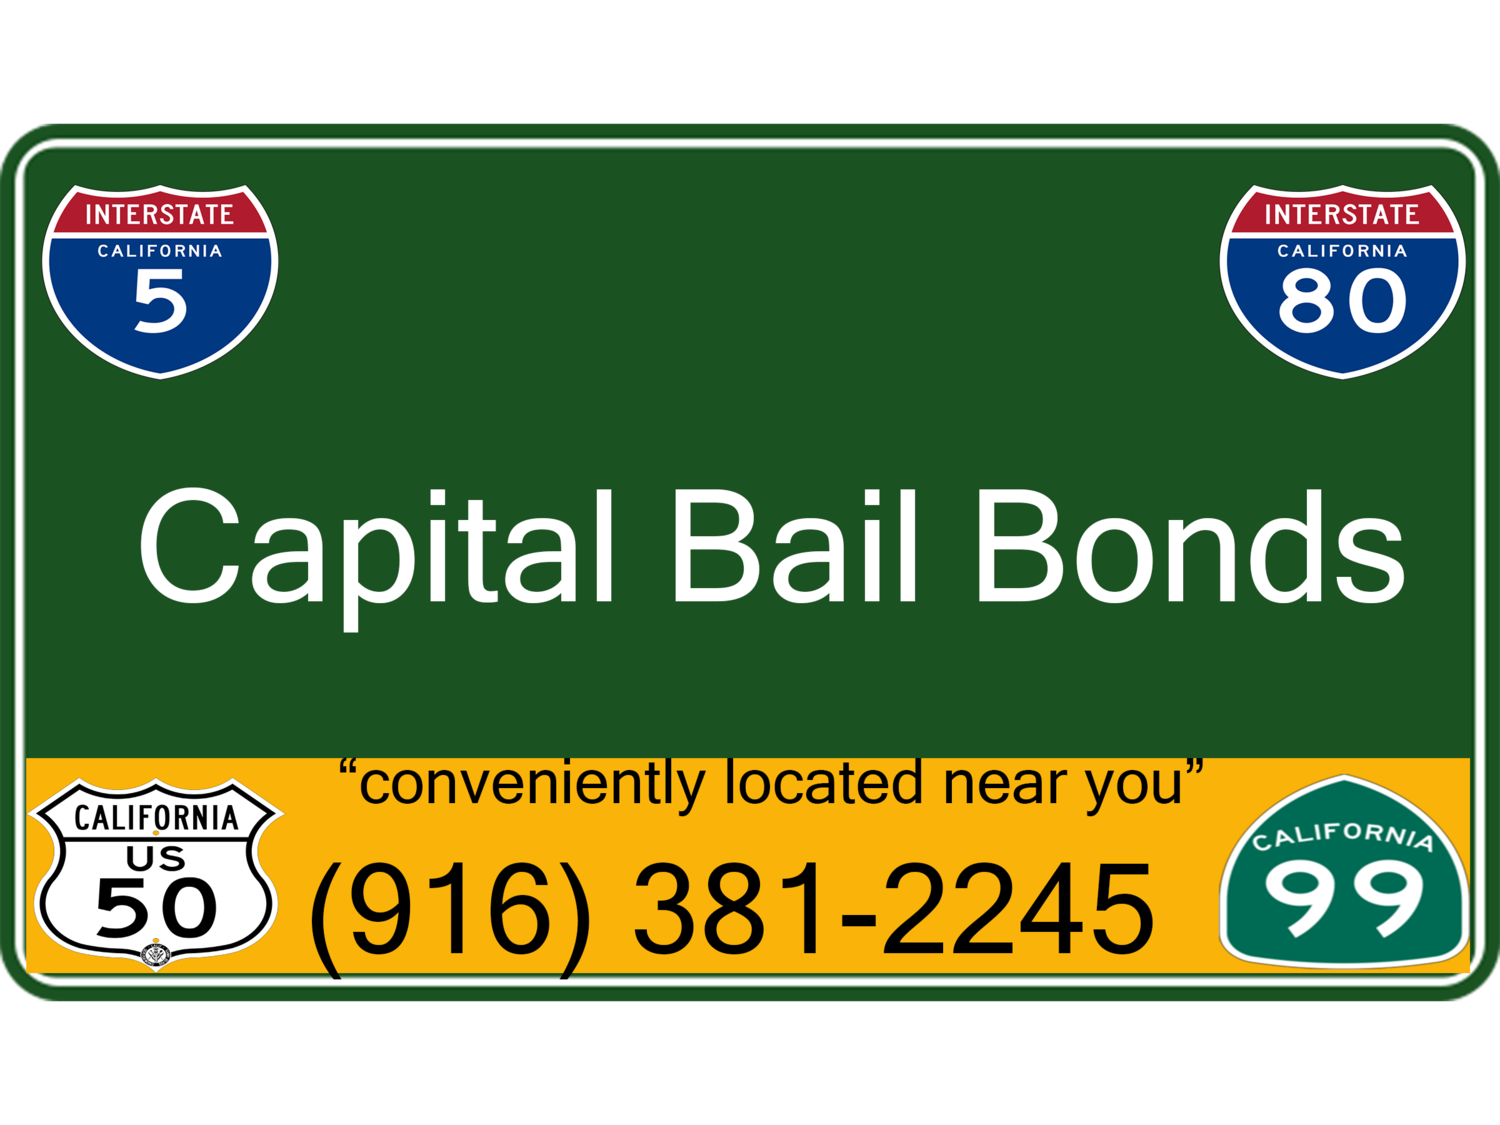 Capital Bail Bonds